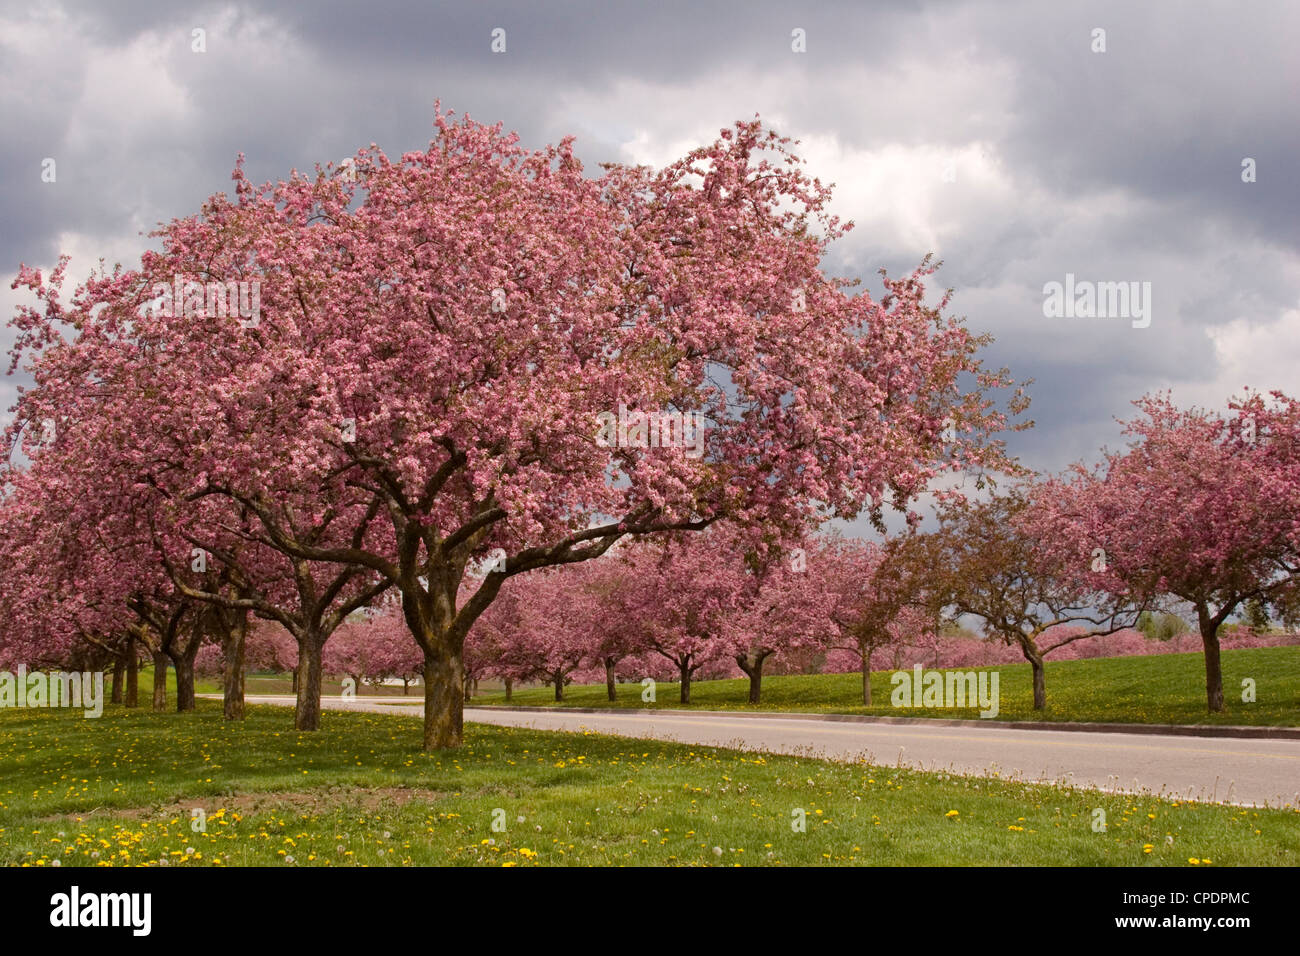 crab apple blossoms trees lane colorful pink flowers spring - Stock Image